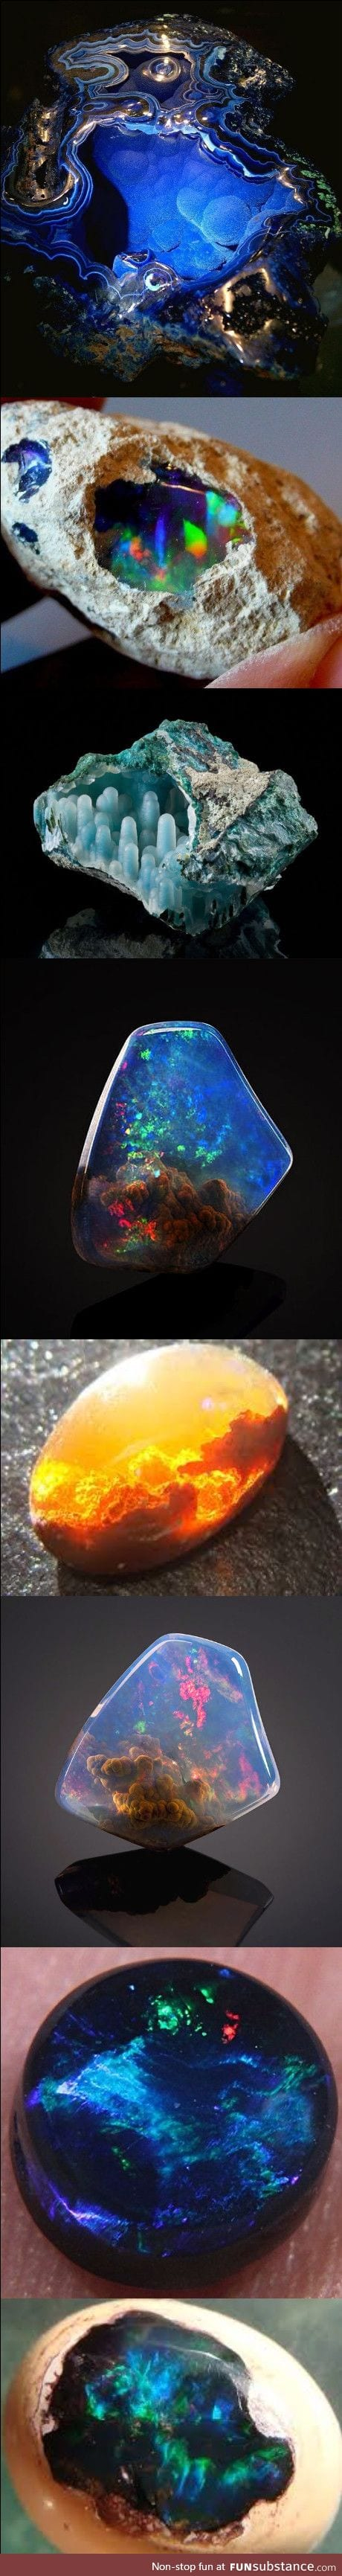 Rocks that look like they contain other worlds